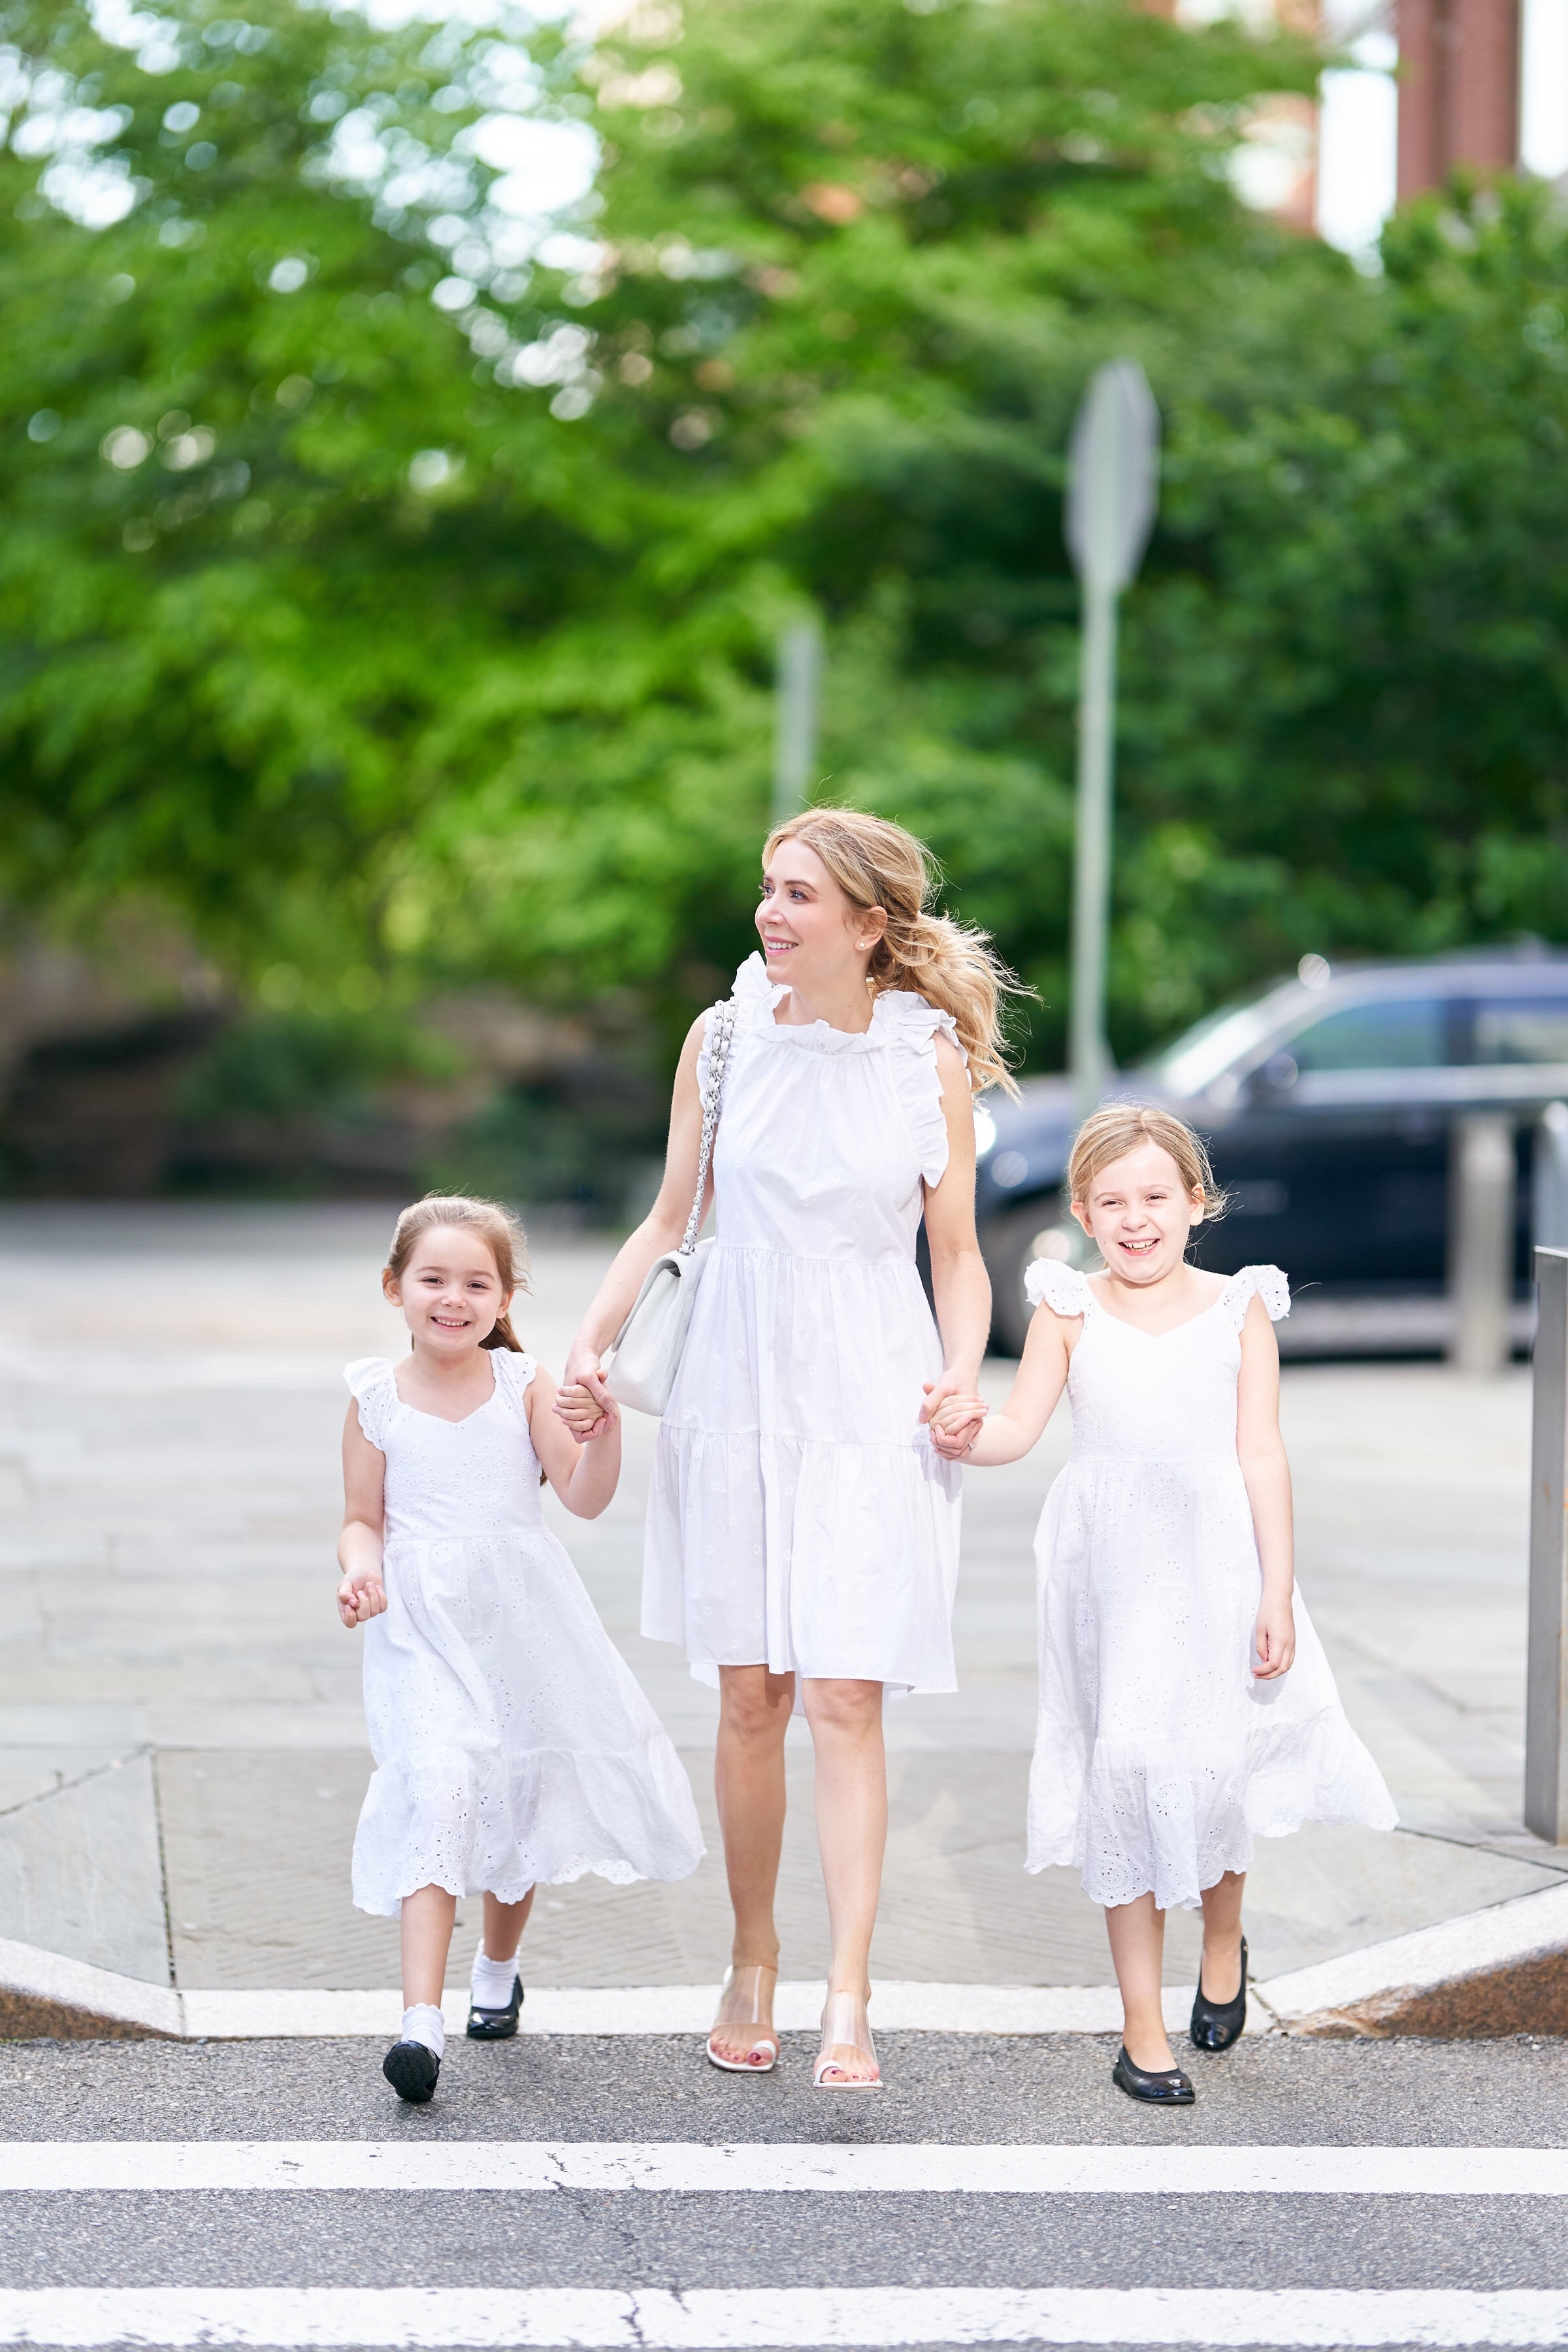 About the Outfits, Mommy daughter dresses, matching dresses, white dresses, www.abouttheoutfits.com